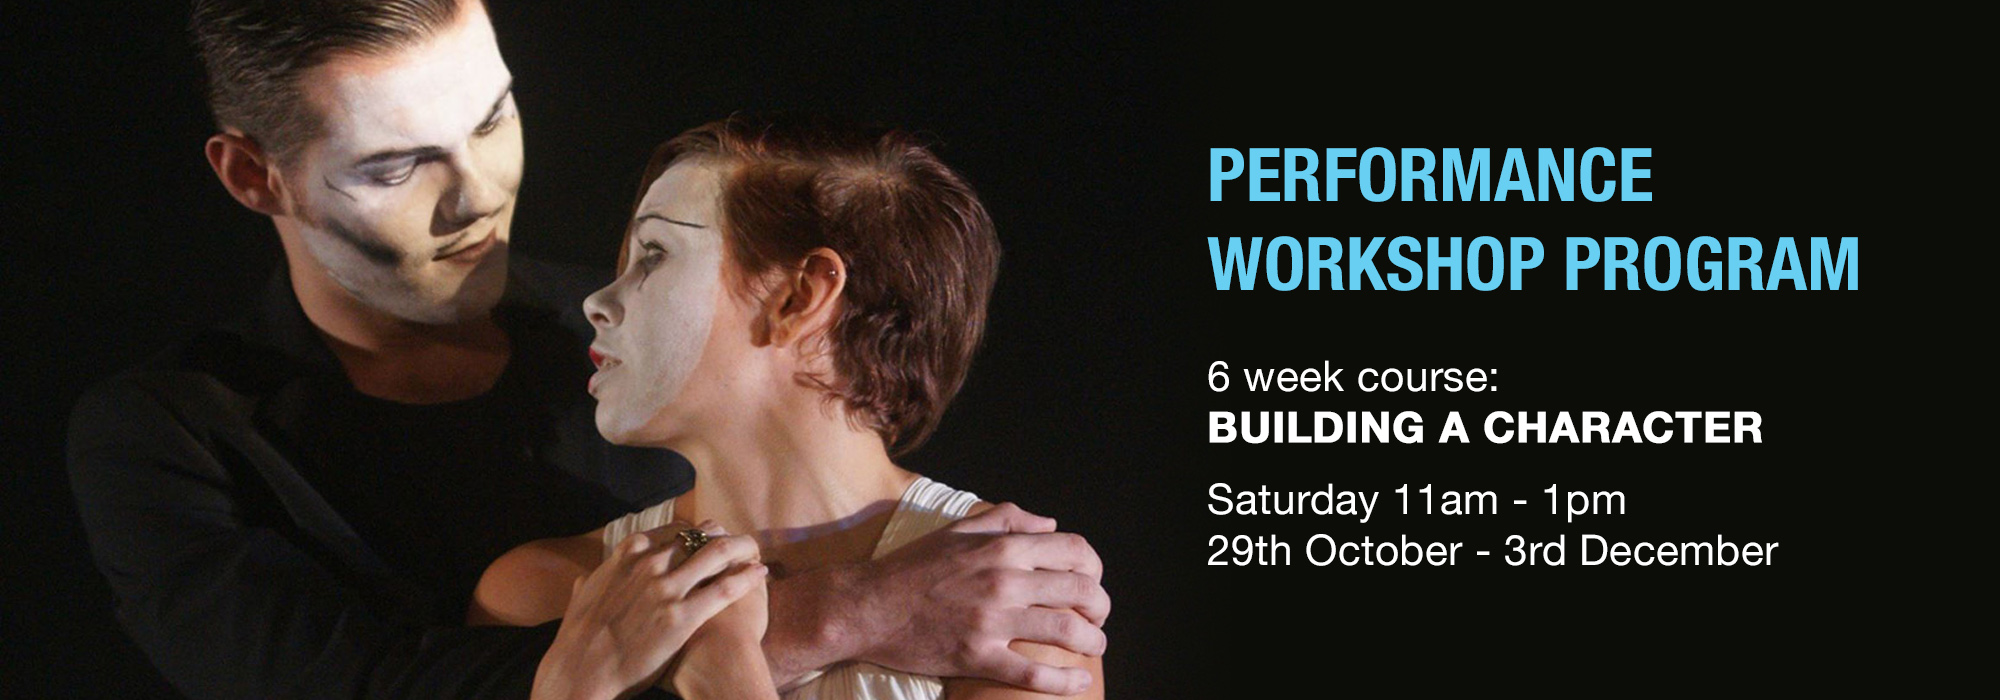 Performance workshops at Full Throttle Theatre Townsville